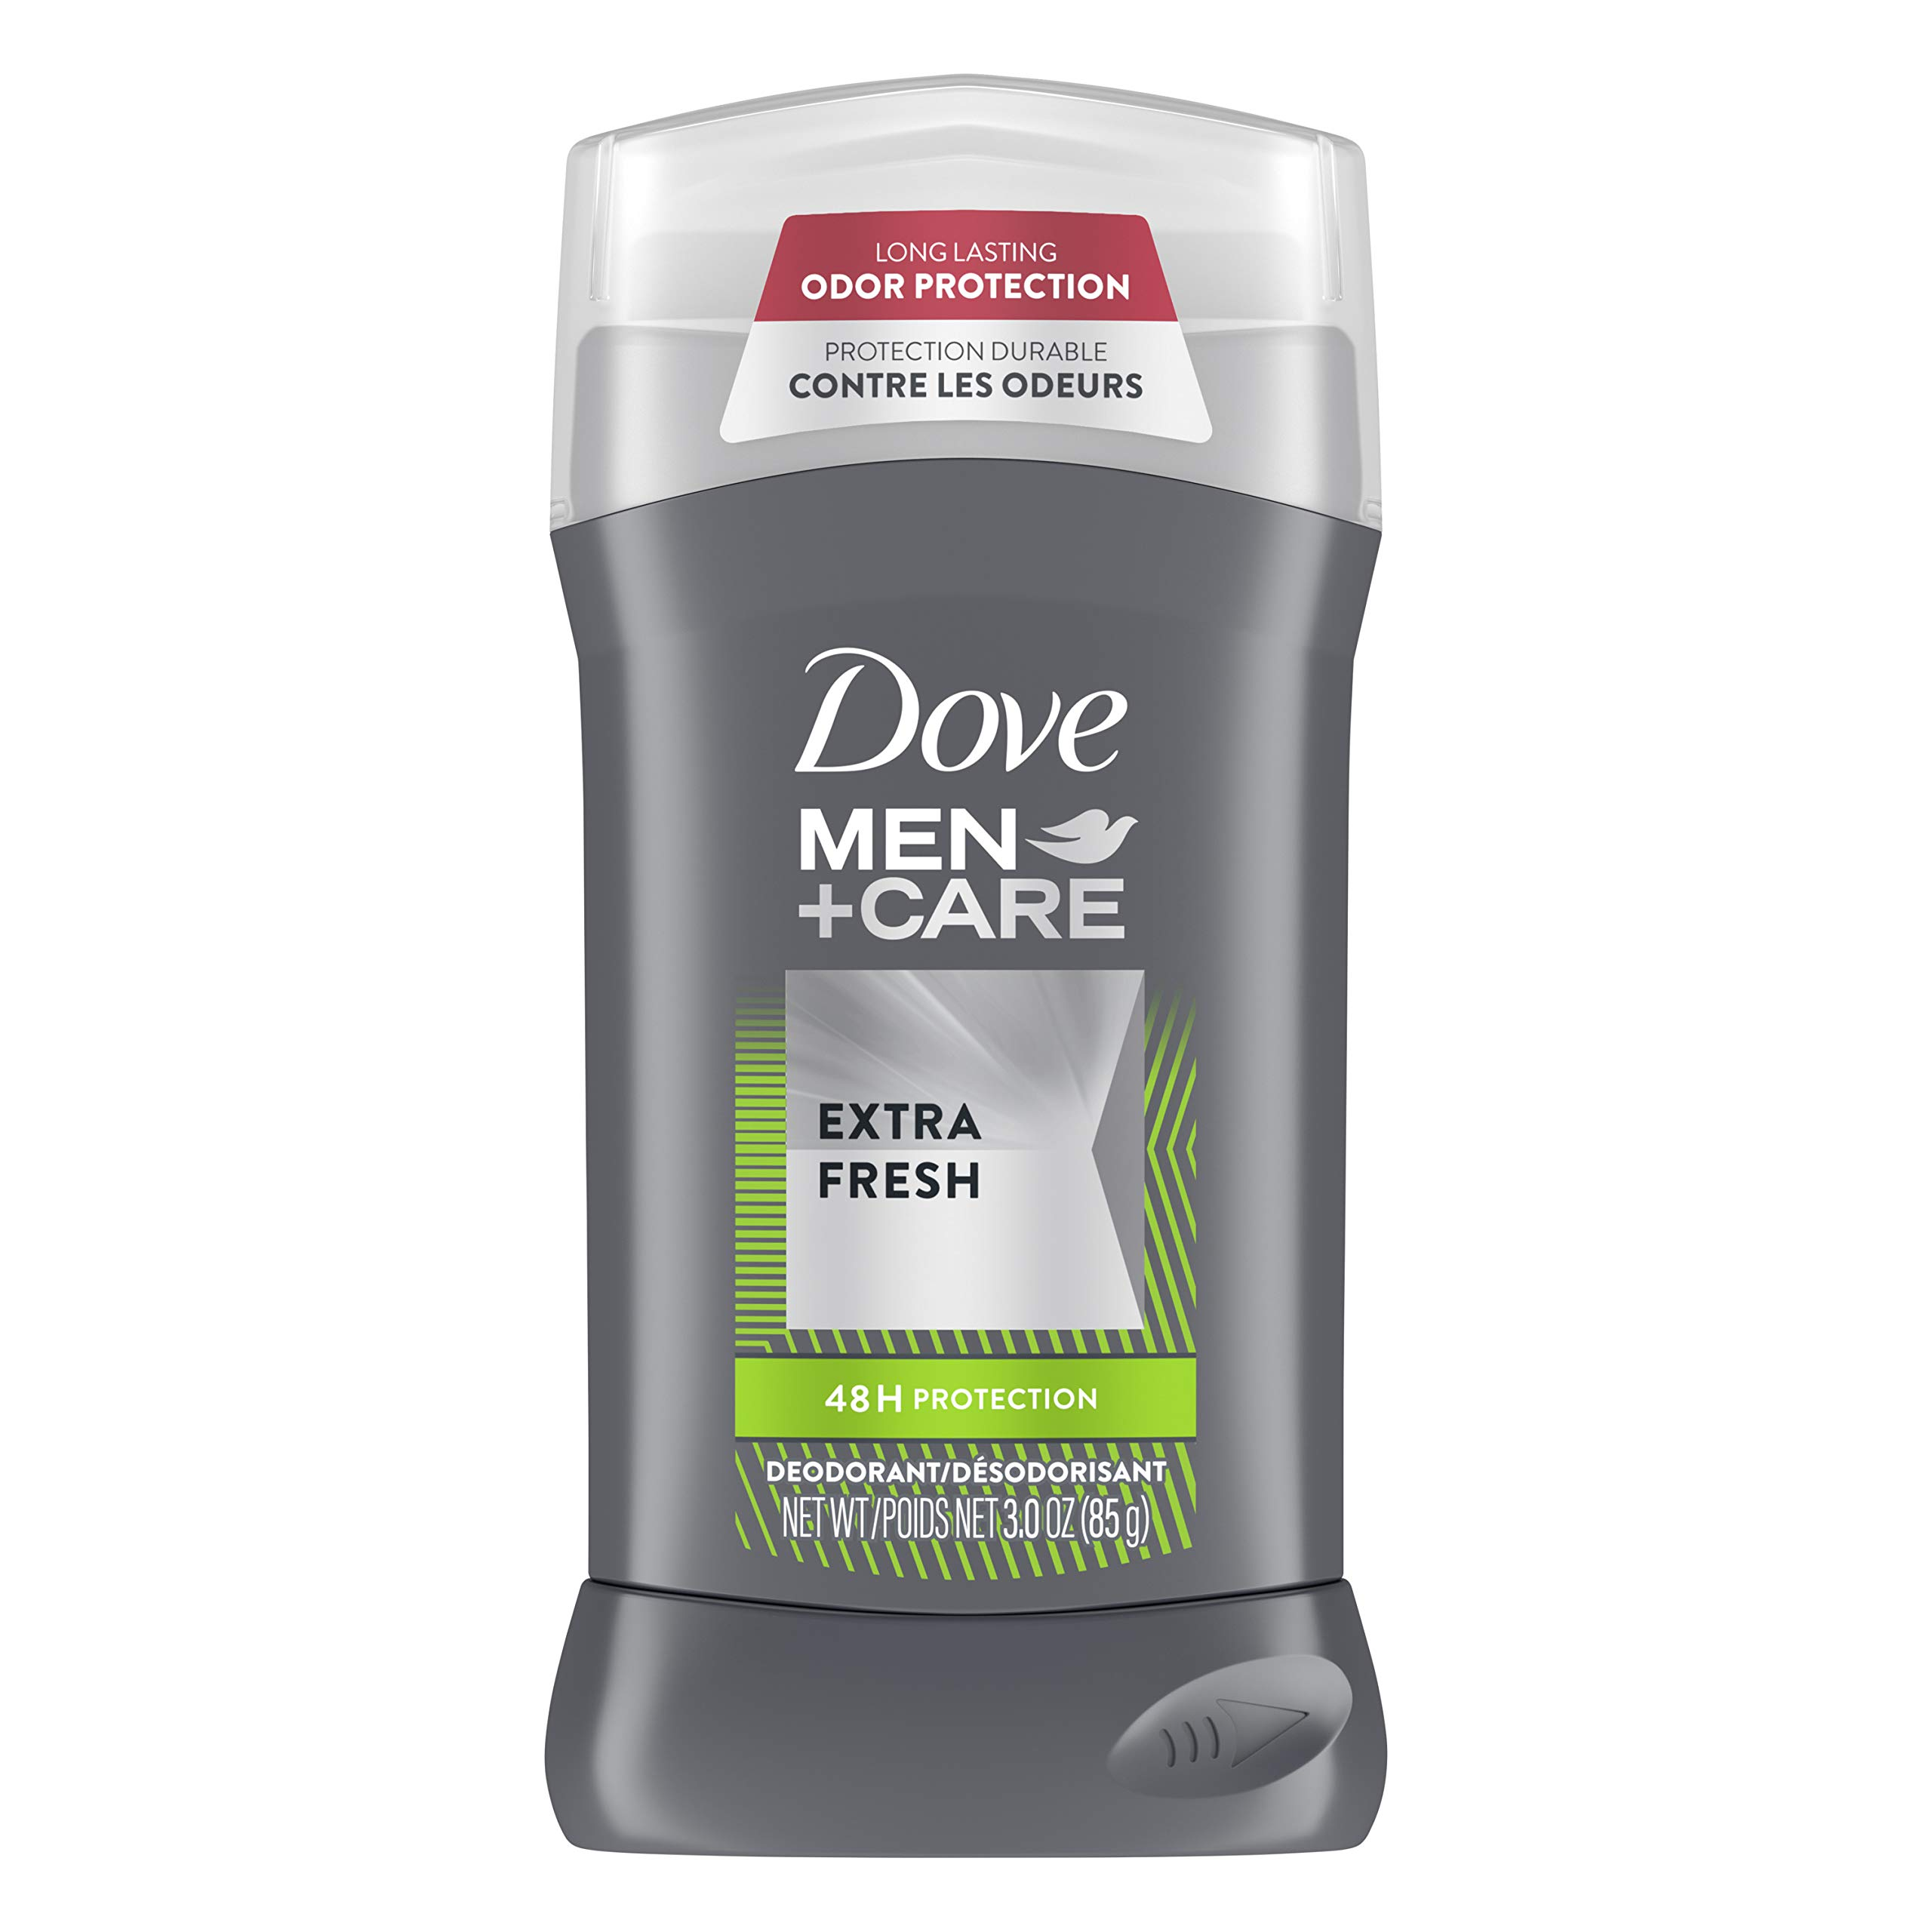 Dove Men+Care Deodorant Stick Aluminum-free formula with 48-Hour Protection Extra Fresh Deodorant for men with Vitamin E and Triple Action Moisturizer 3 oz